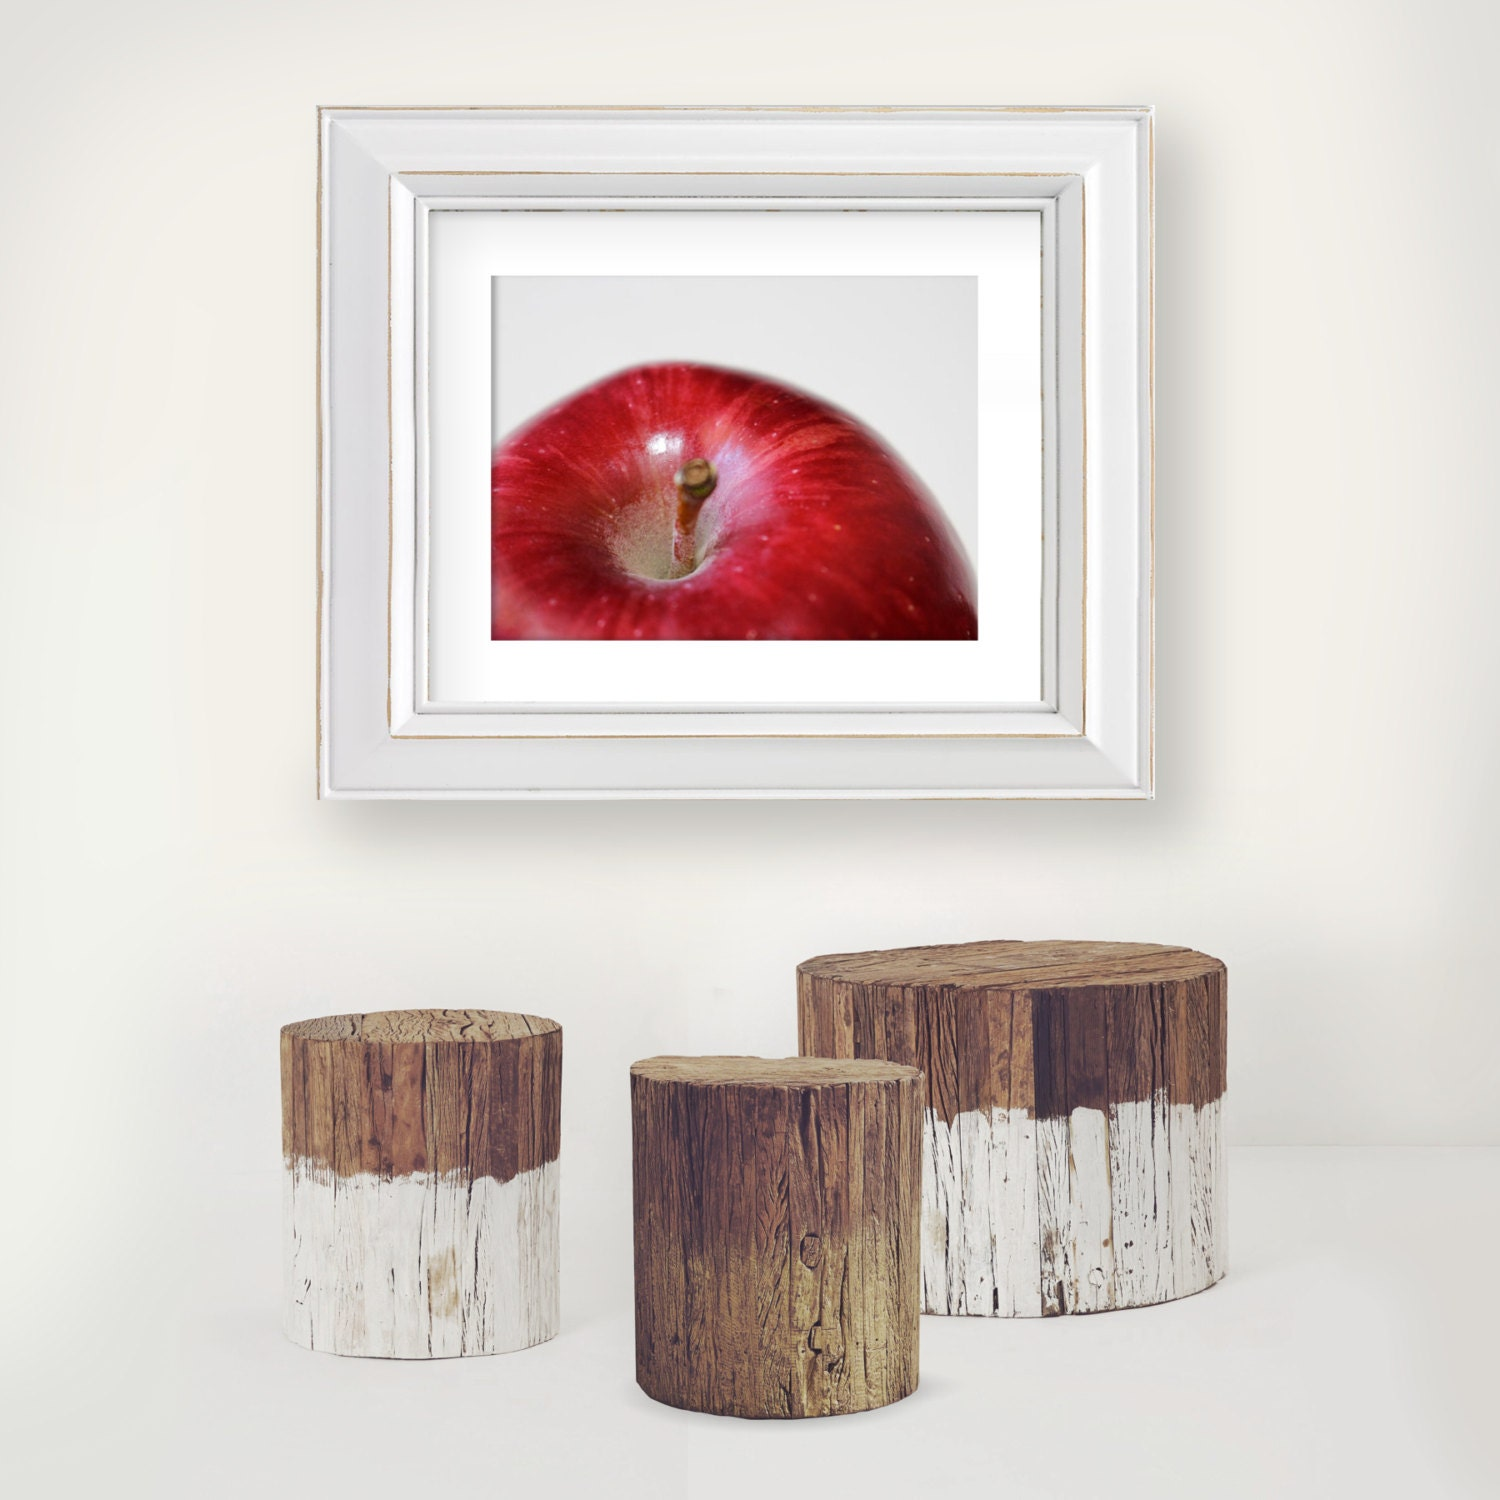 Wall Decor For Rustic Kitchen : Red apple photography wall art rustic kitchen decor